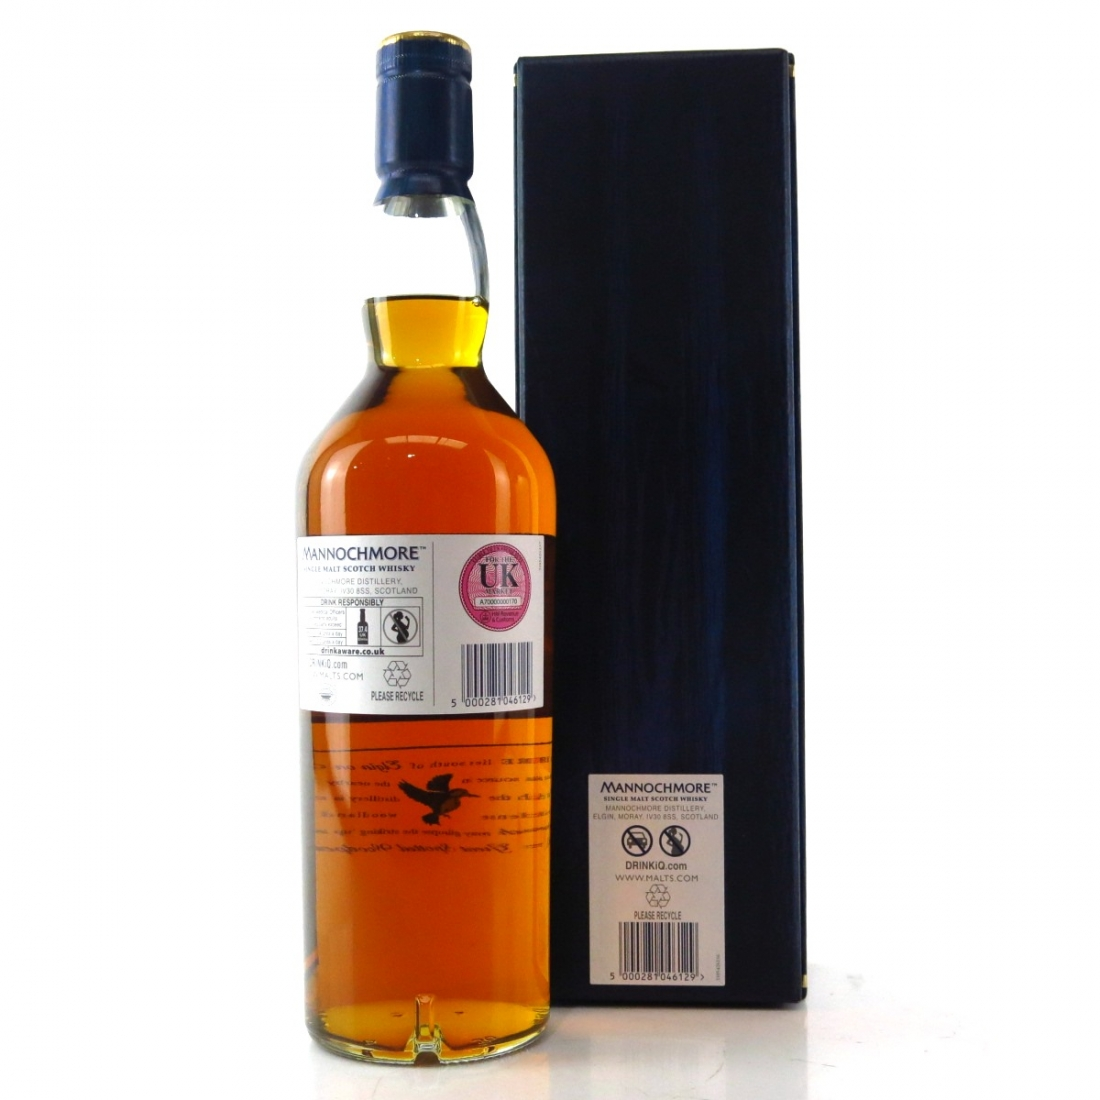 Mannochmore 1990 Cask Strength 25 Year Old